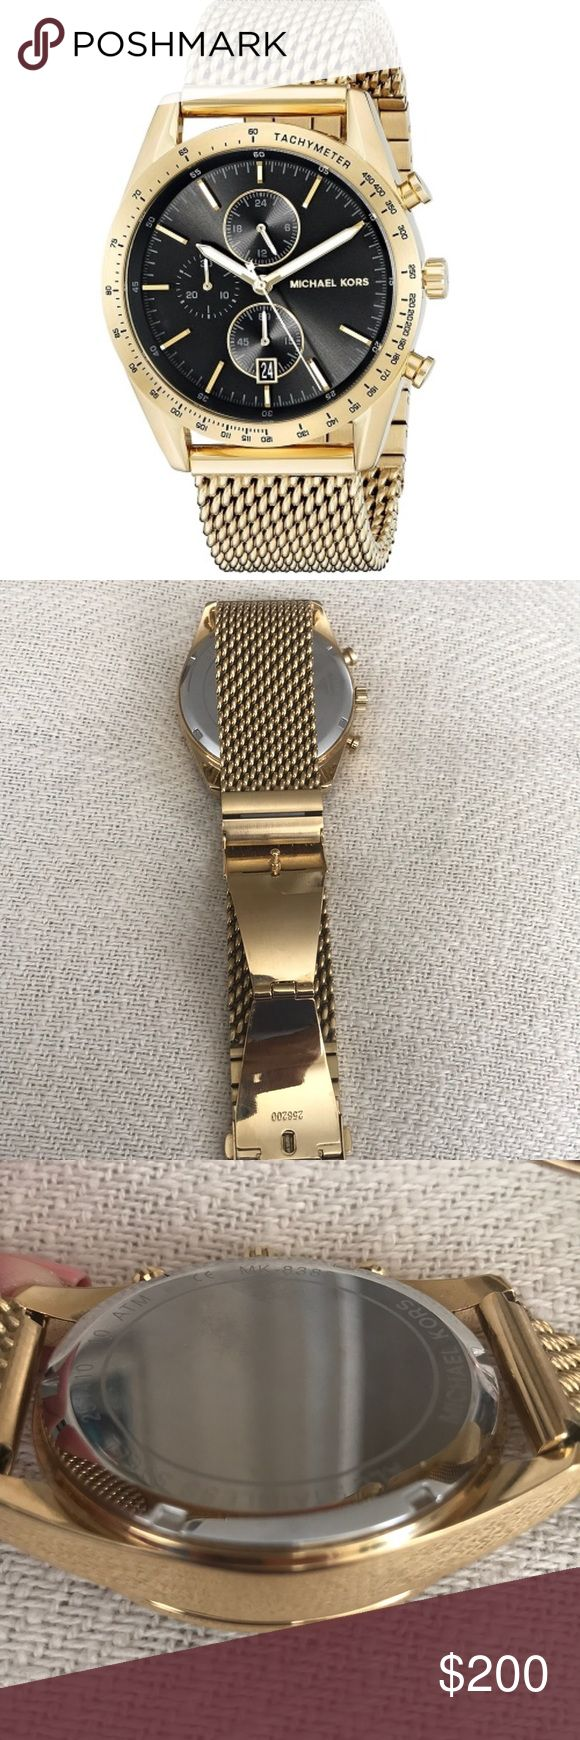 MK Men's Stainless Steel Mesh Bracelet Watch 42mm AUTHENTIC!!! Like New! Worn once!!! MICHAEL KORS ACCELERATOR ANALOG DISPLAY / QUARTZ MEN'S WATCH/ Michael Kors Men's Chronograph Accelerator Gold Tone Stainless Steel Mesh Bracelet Watch 42mm/ Top Rated Seller Michael Kors Accessories Watches